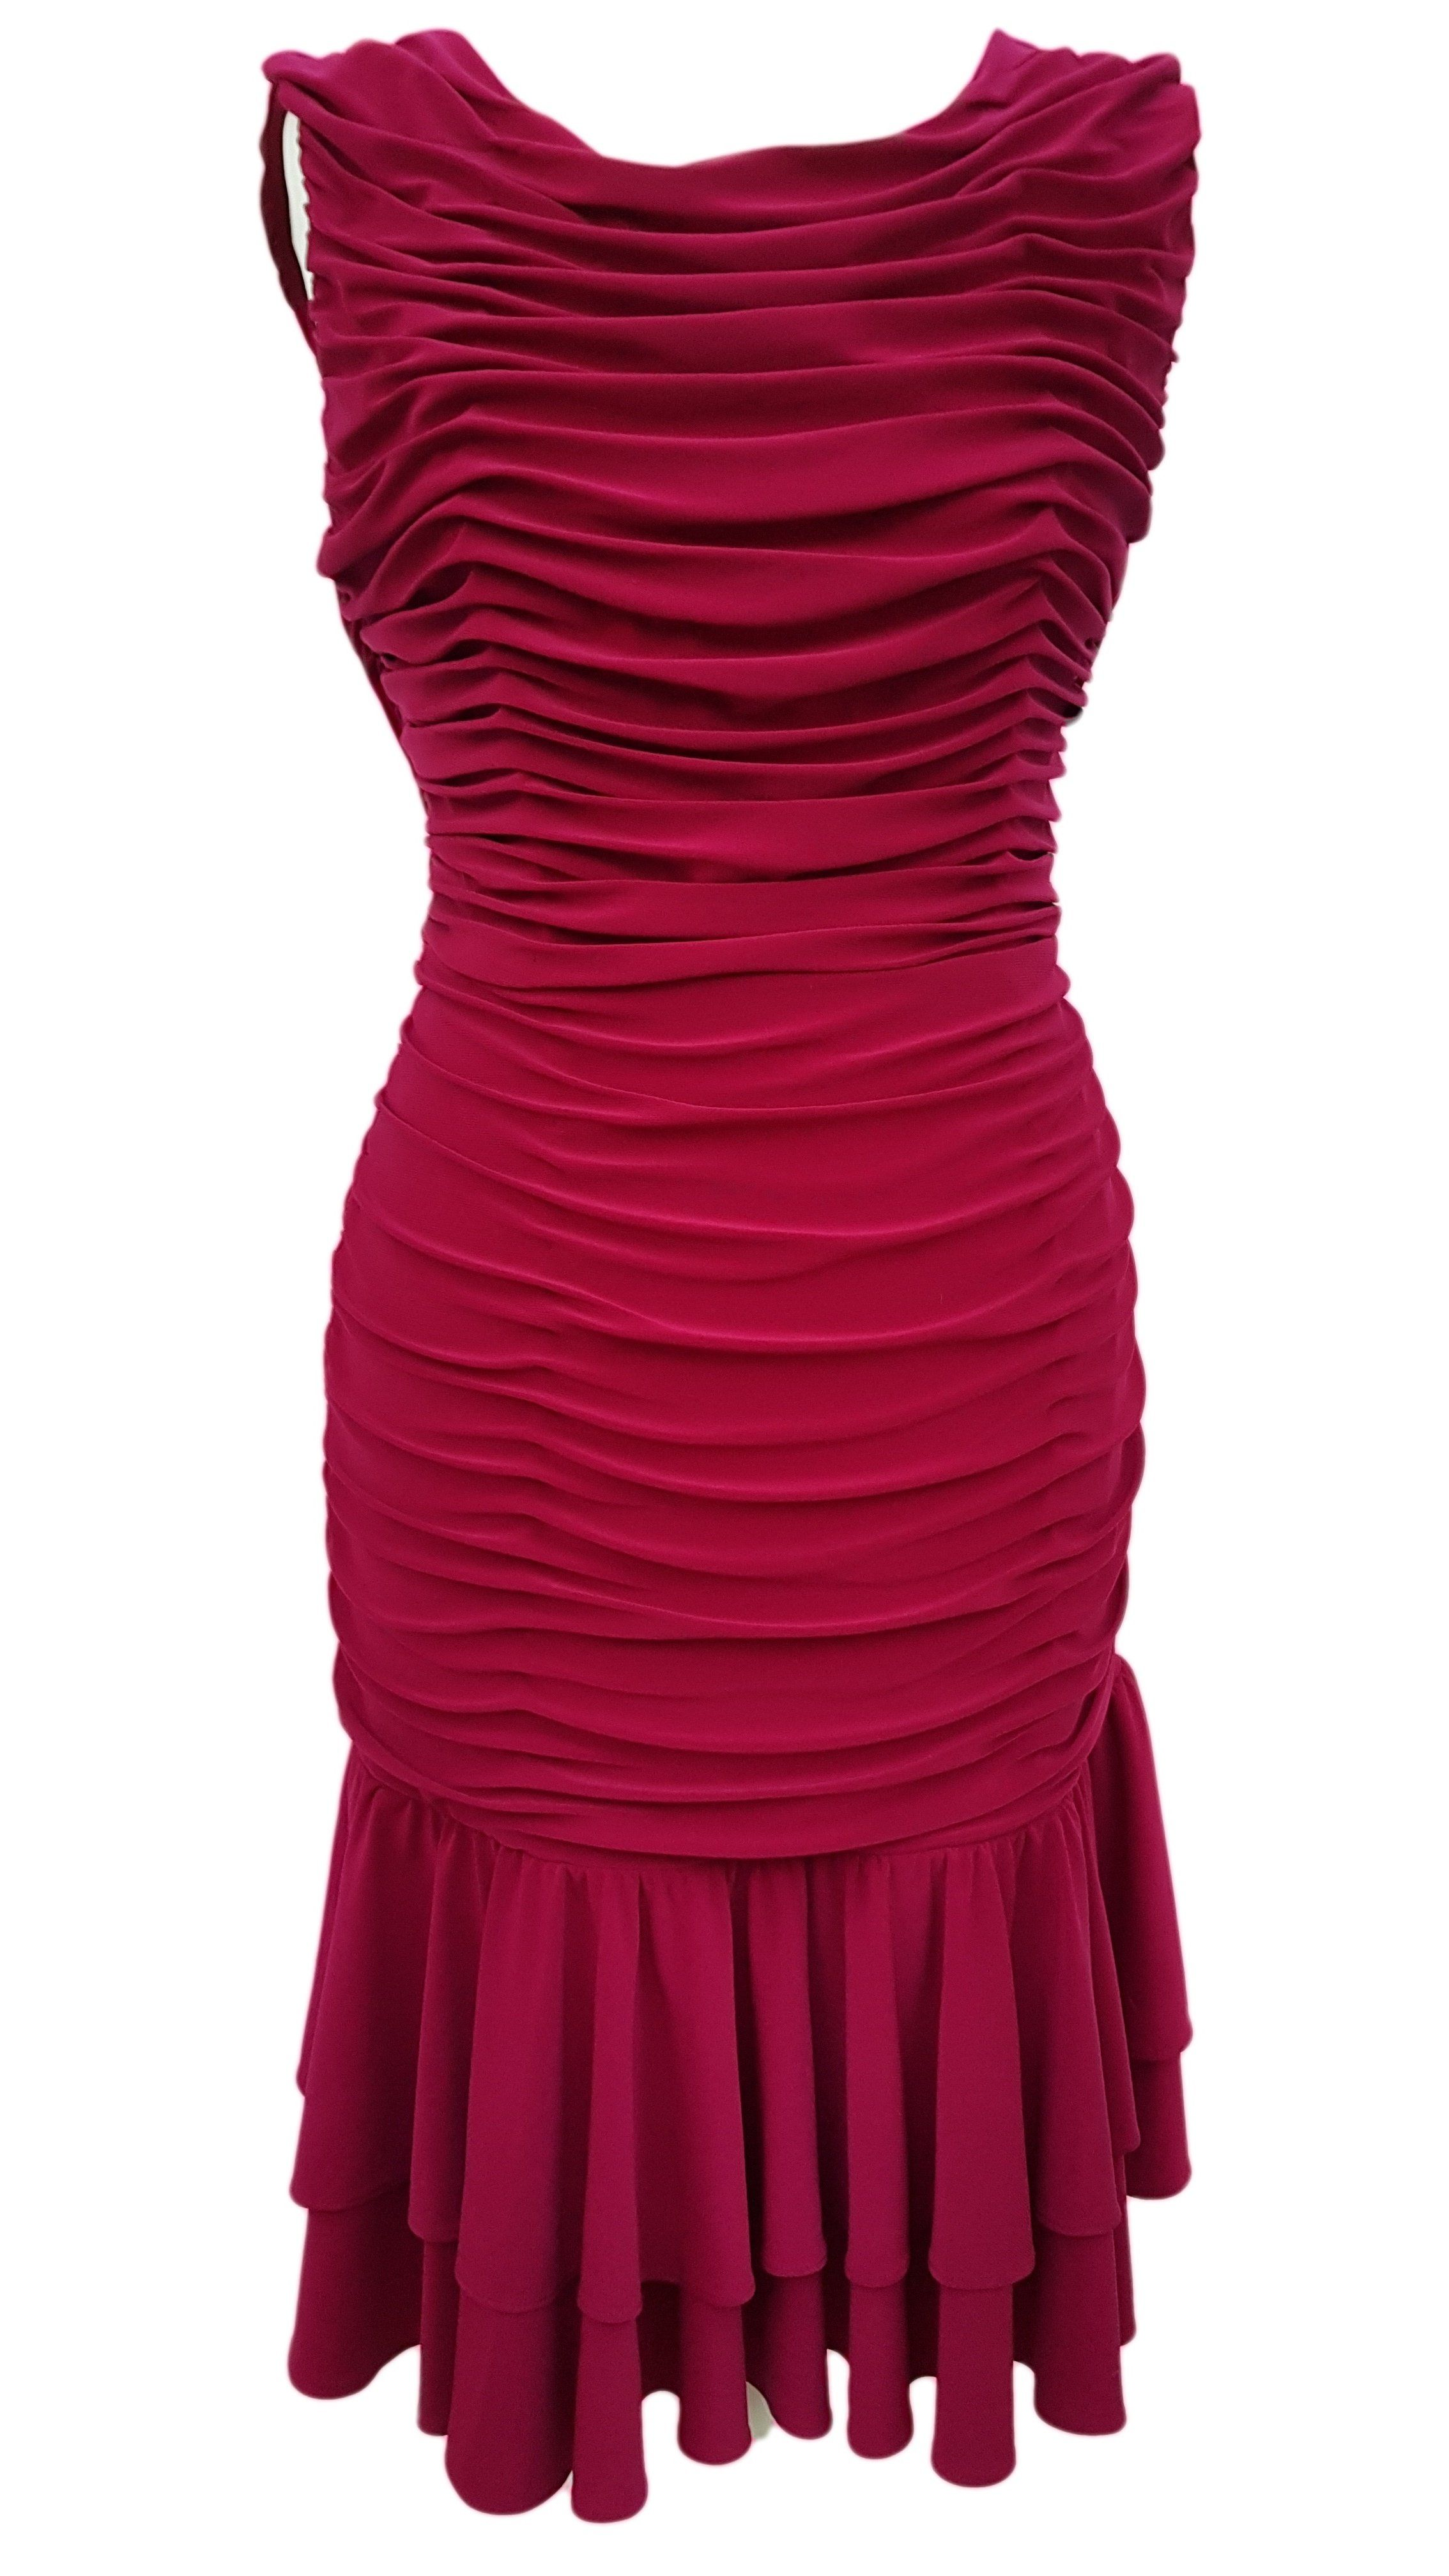 Phase Eight Judy Berry dress Size 16